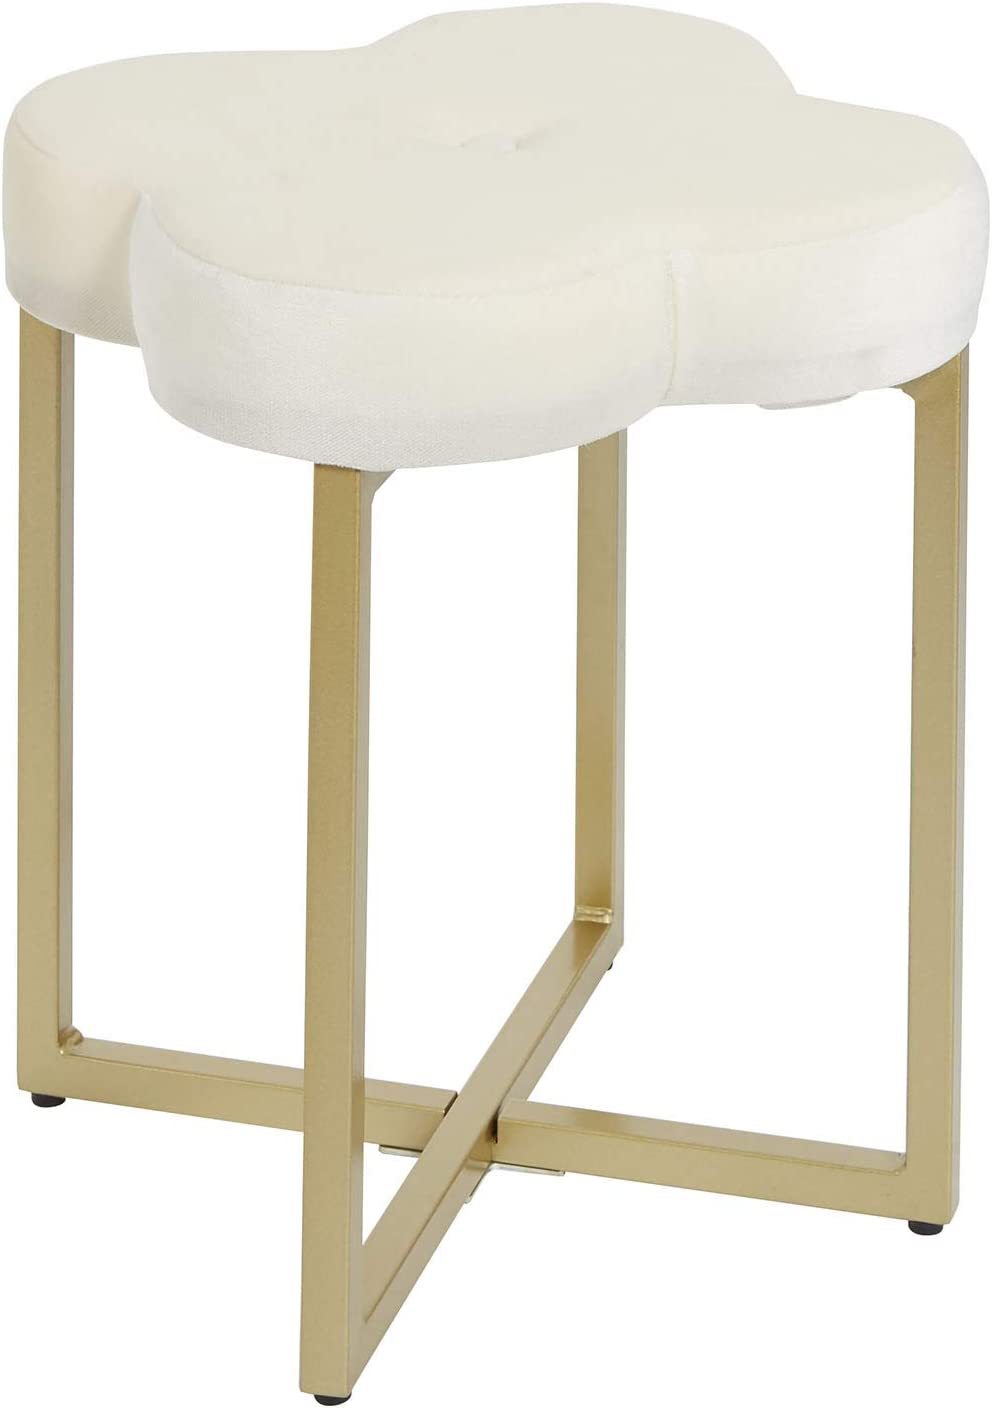 Silverwood Vanity Bench, Cream and Gold